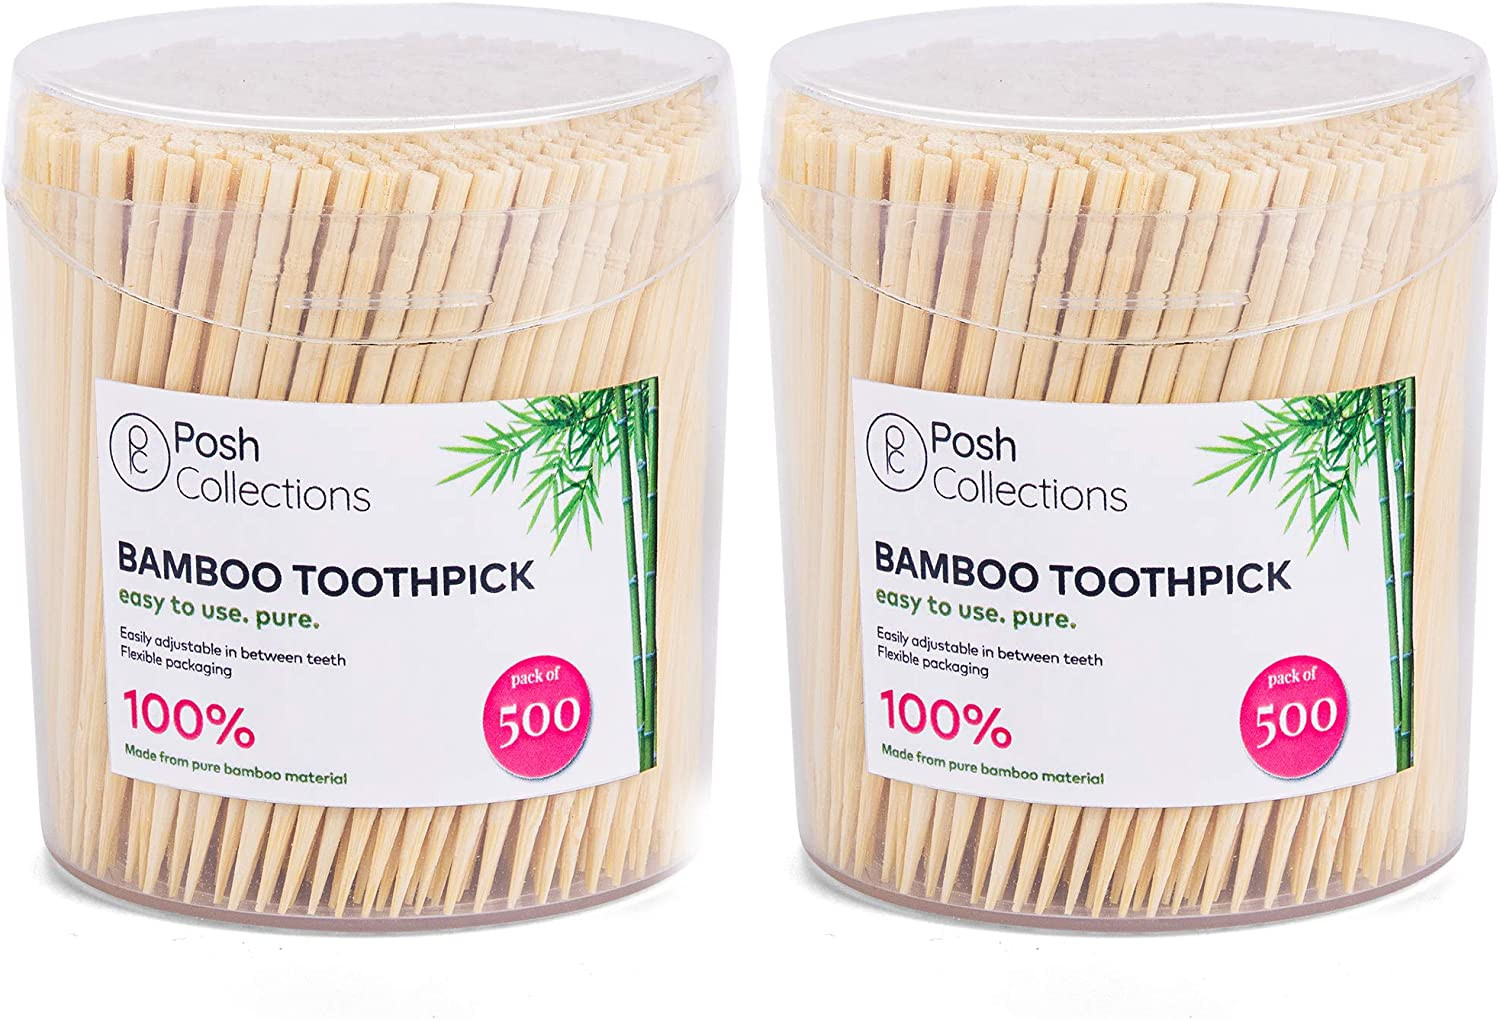 Posh Collection Bamboo Toothpicks Single Sided Wooden Toothpicks 1000-Piece Sturdy Round Tooth Picks For Teeth Cleaning, Food, Crafts In Clear Holders